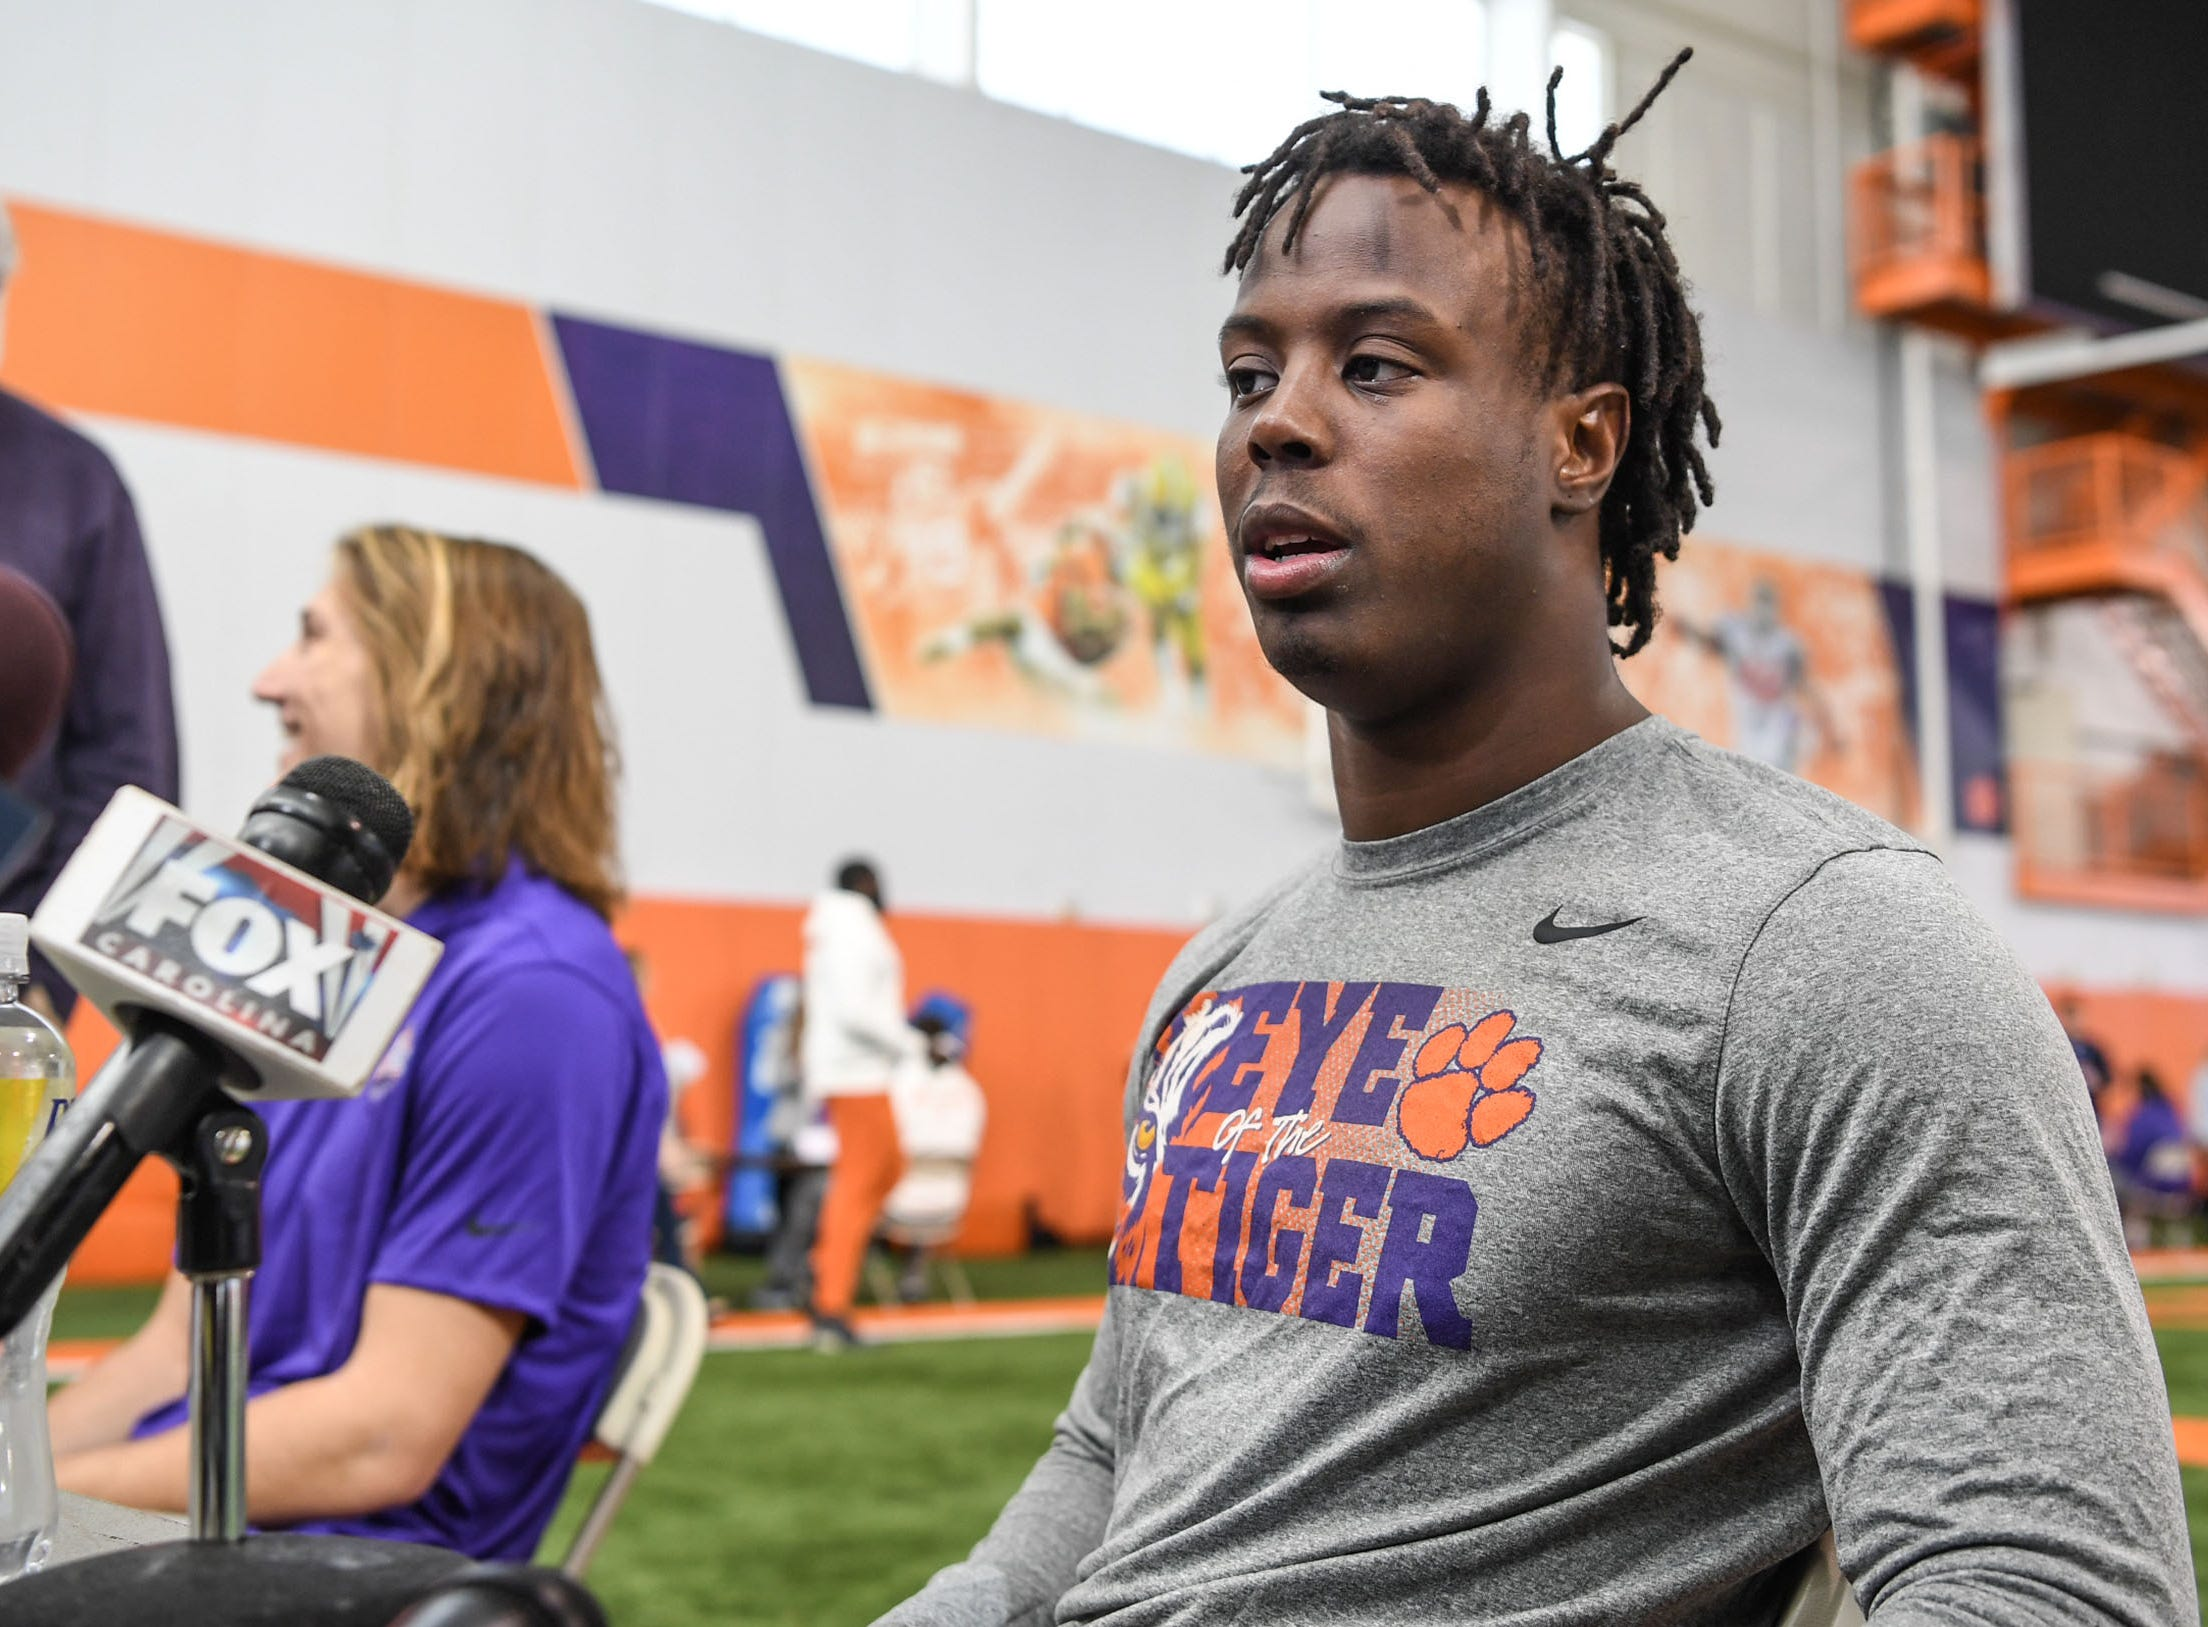 Clemson running back Travis Etienne is interviewed during Media Day at the Poe Indoor Facility in Clemson on Tuesday.